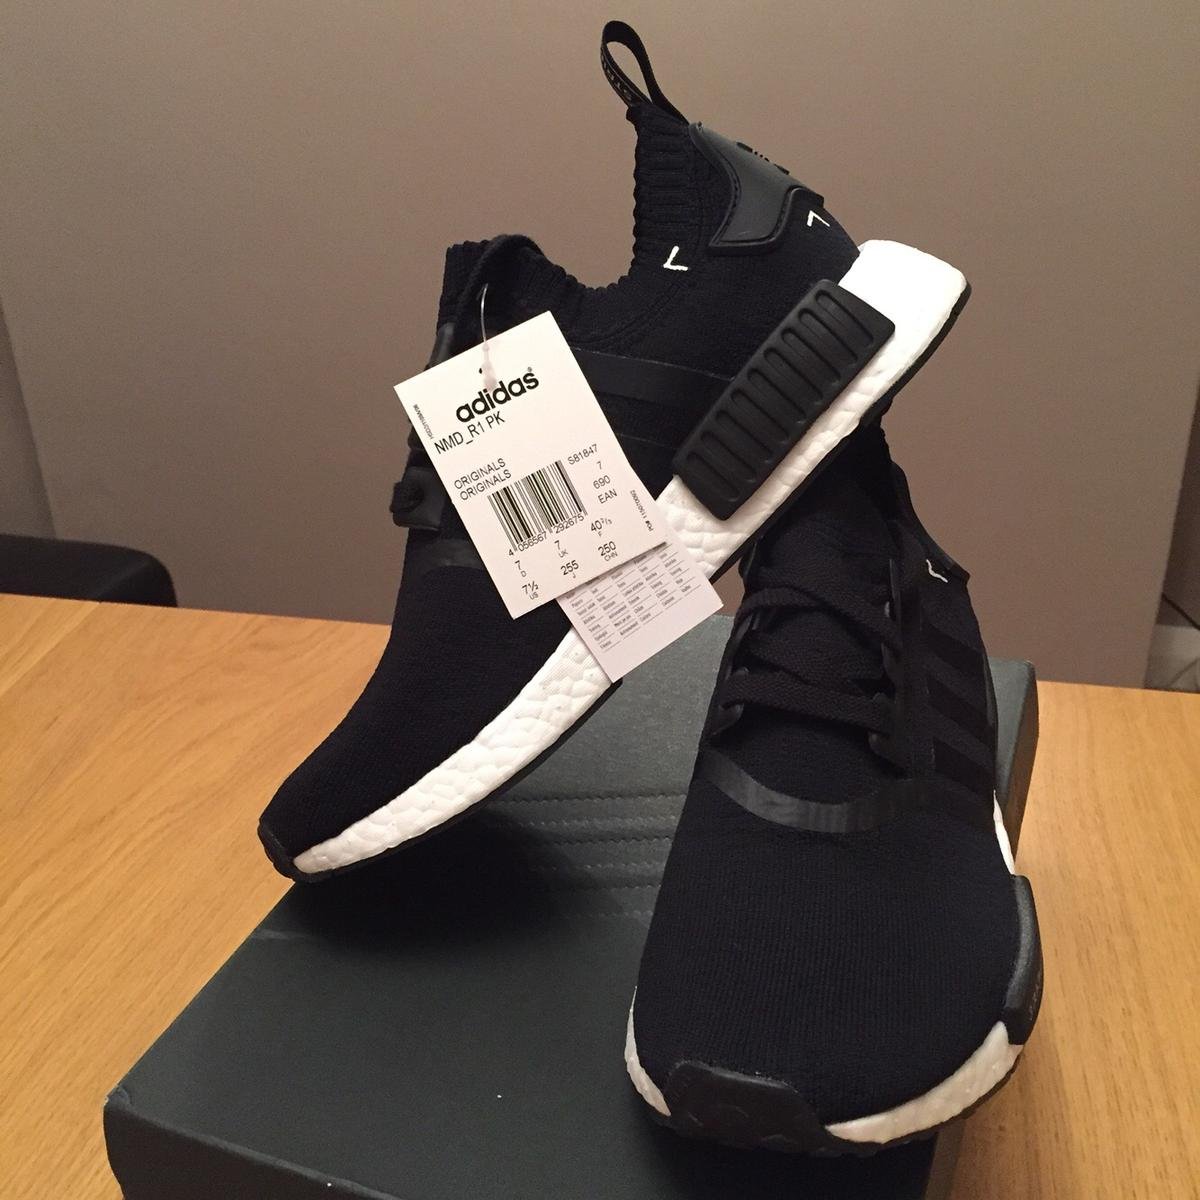 7f80e2a28 Adidas NMD R1 Japan Boost Black Primeknit in CR2 South Croydon for ...